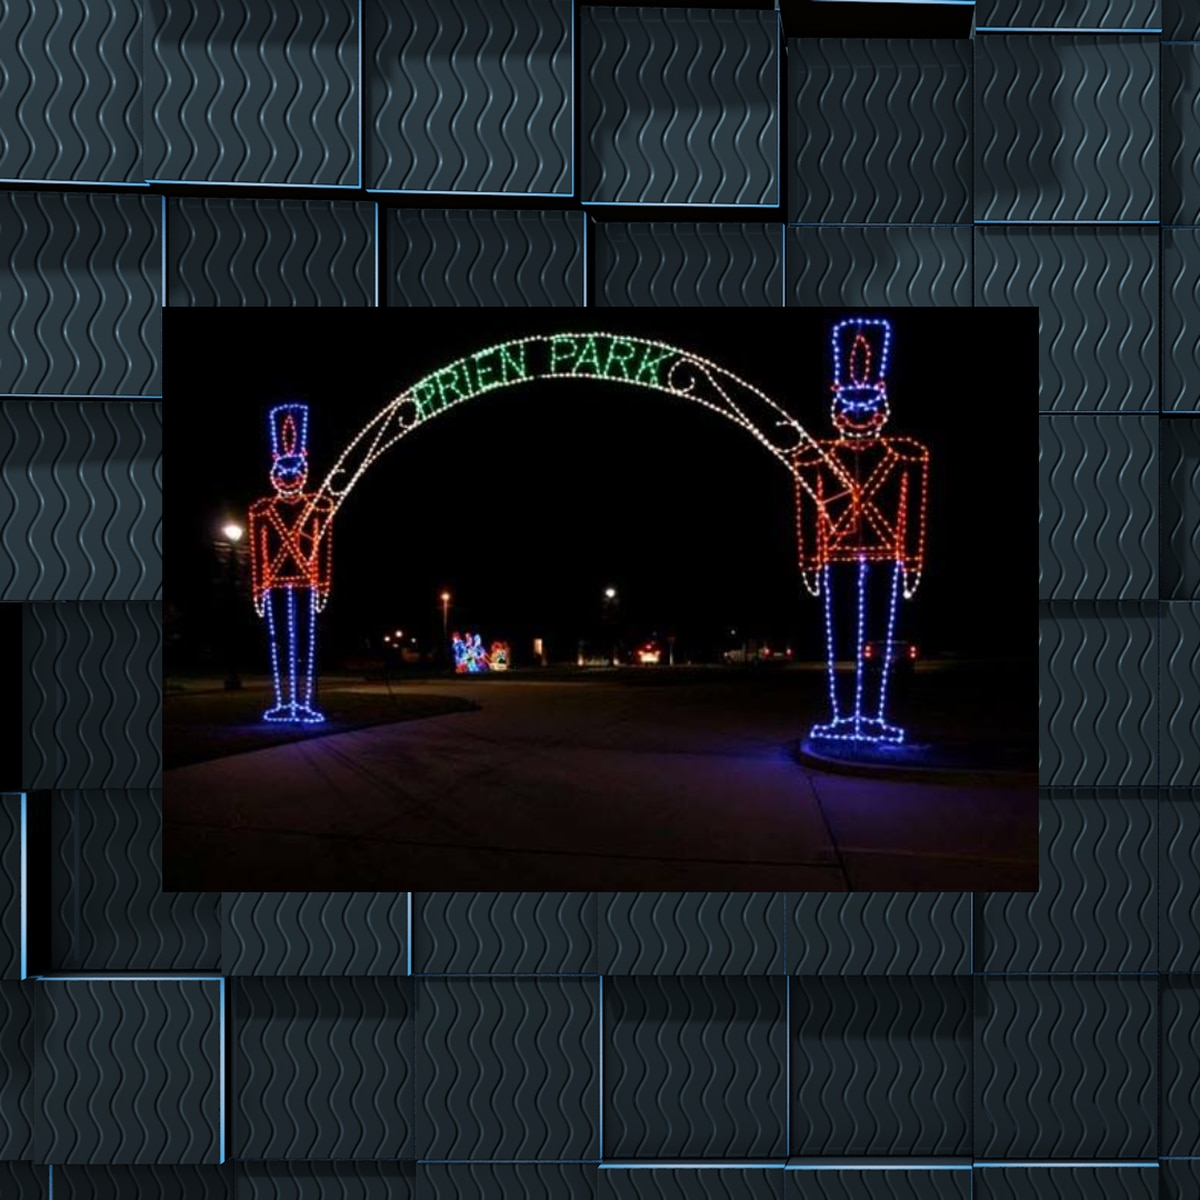 CPPJ announces annual Christmas display at Prien Lake Park